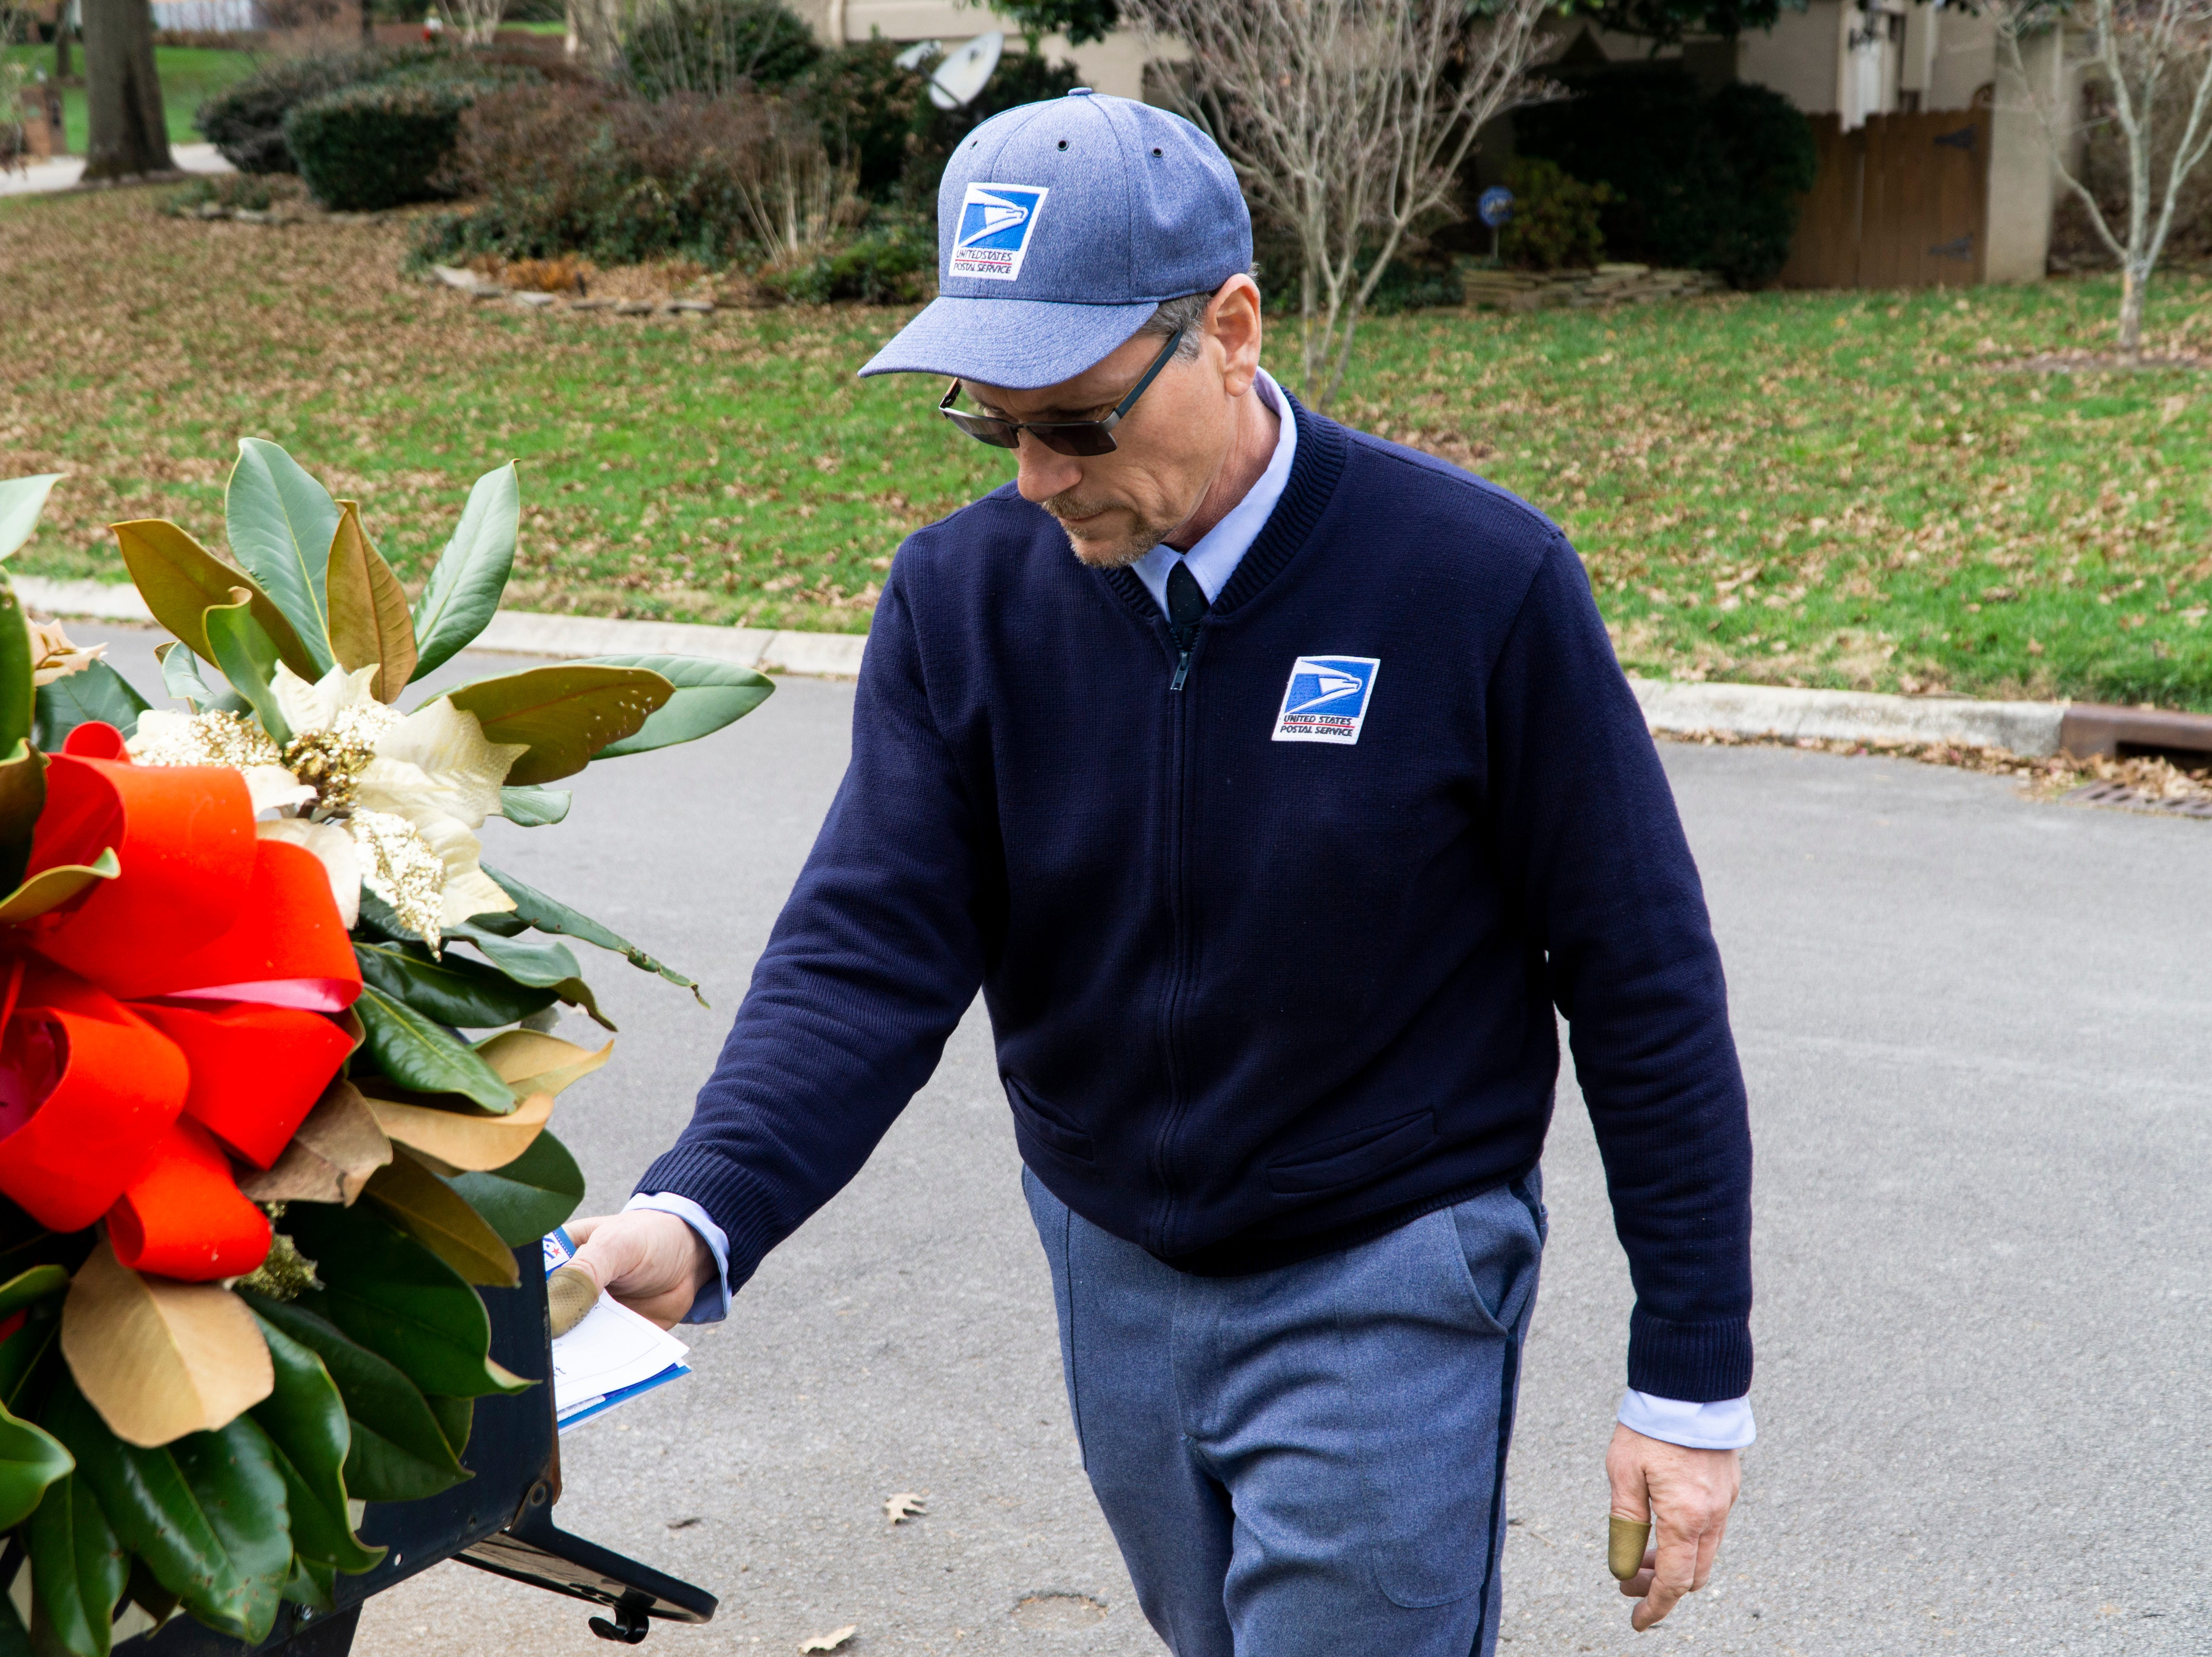 Bryan Lay places delivers a handful of mail to a West Knoxville home on Friday, Dec. 7. USPS is predicting that Monday, Dec. 17, will be the busiest day for shipping this holiday season.